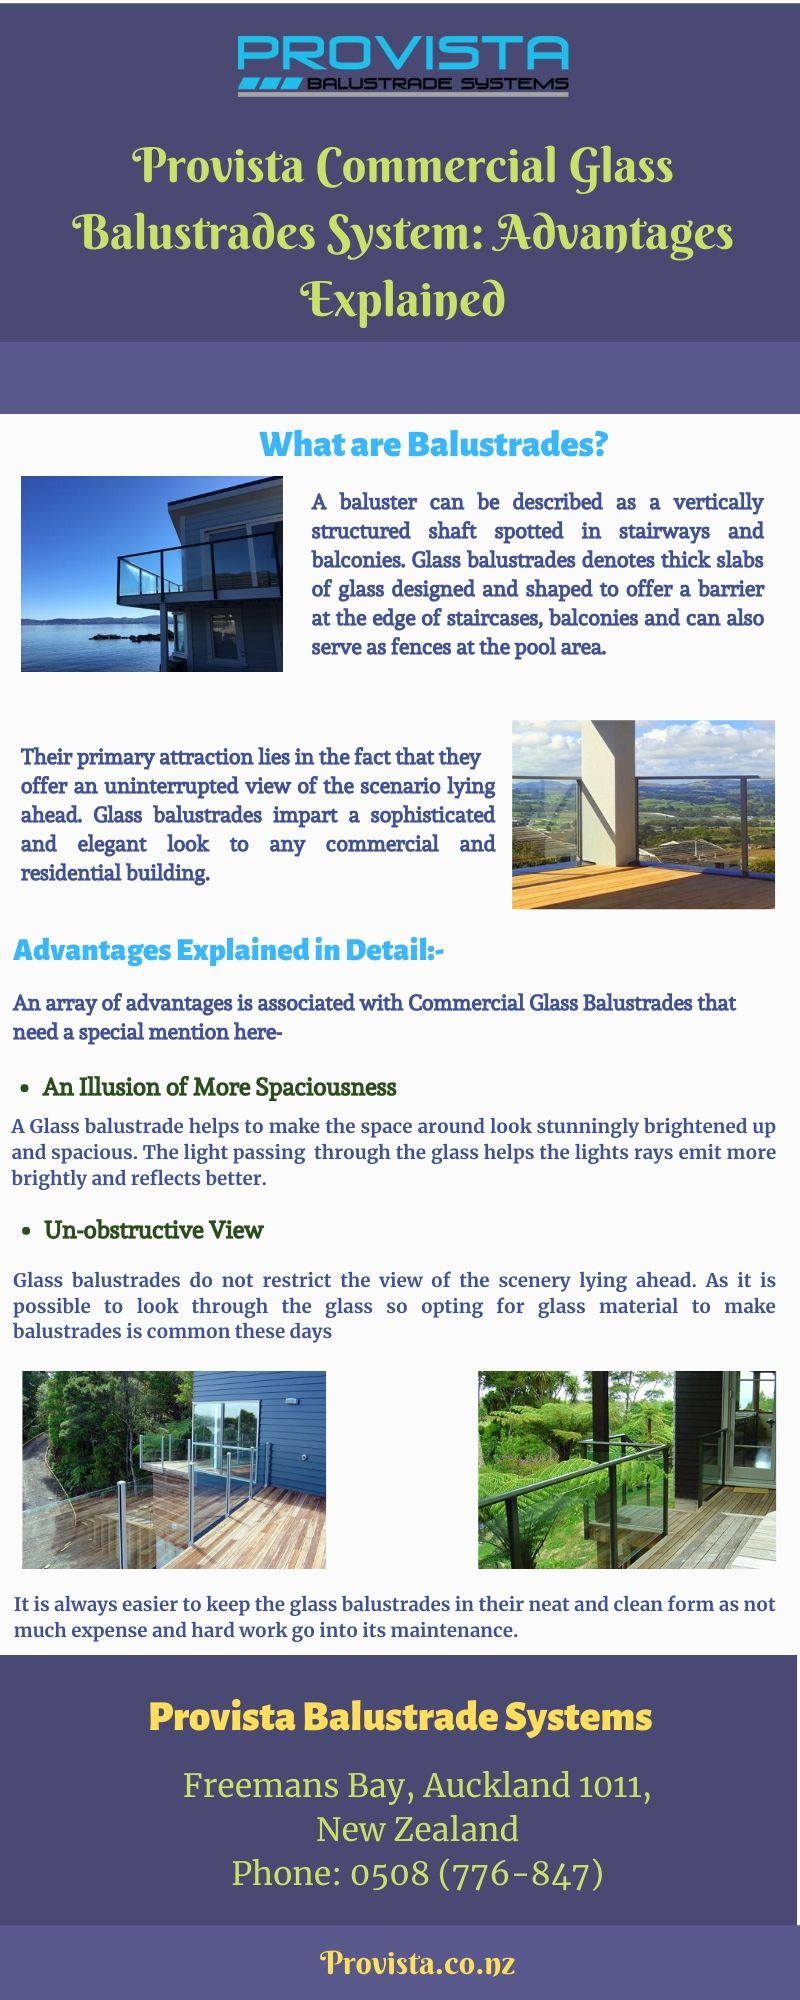 Provista Commercial Glass Balustrades System: Advantages Explained Readers will know the importance of installing glass balustrades at the office, shops and other commercial buildings. Provista Balustrade System enjoys better reviews and ratings compared to others in the market. For more details, visit: https://bit.ly/2F by Provista